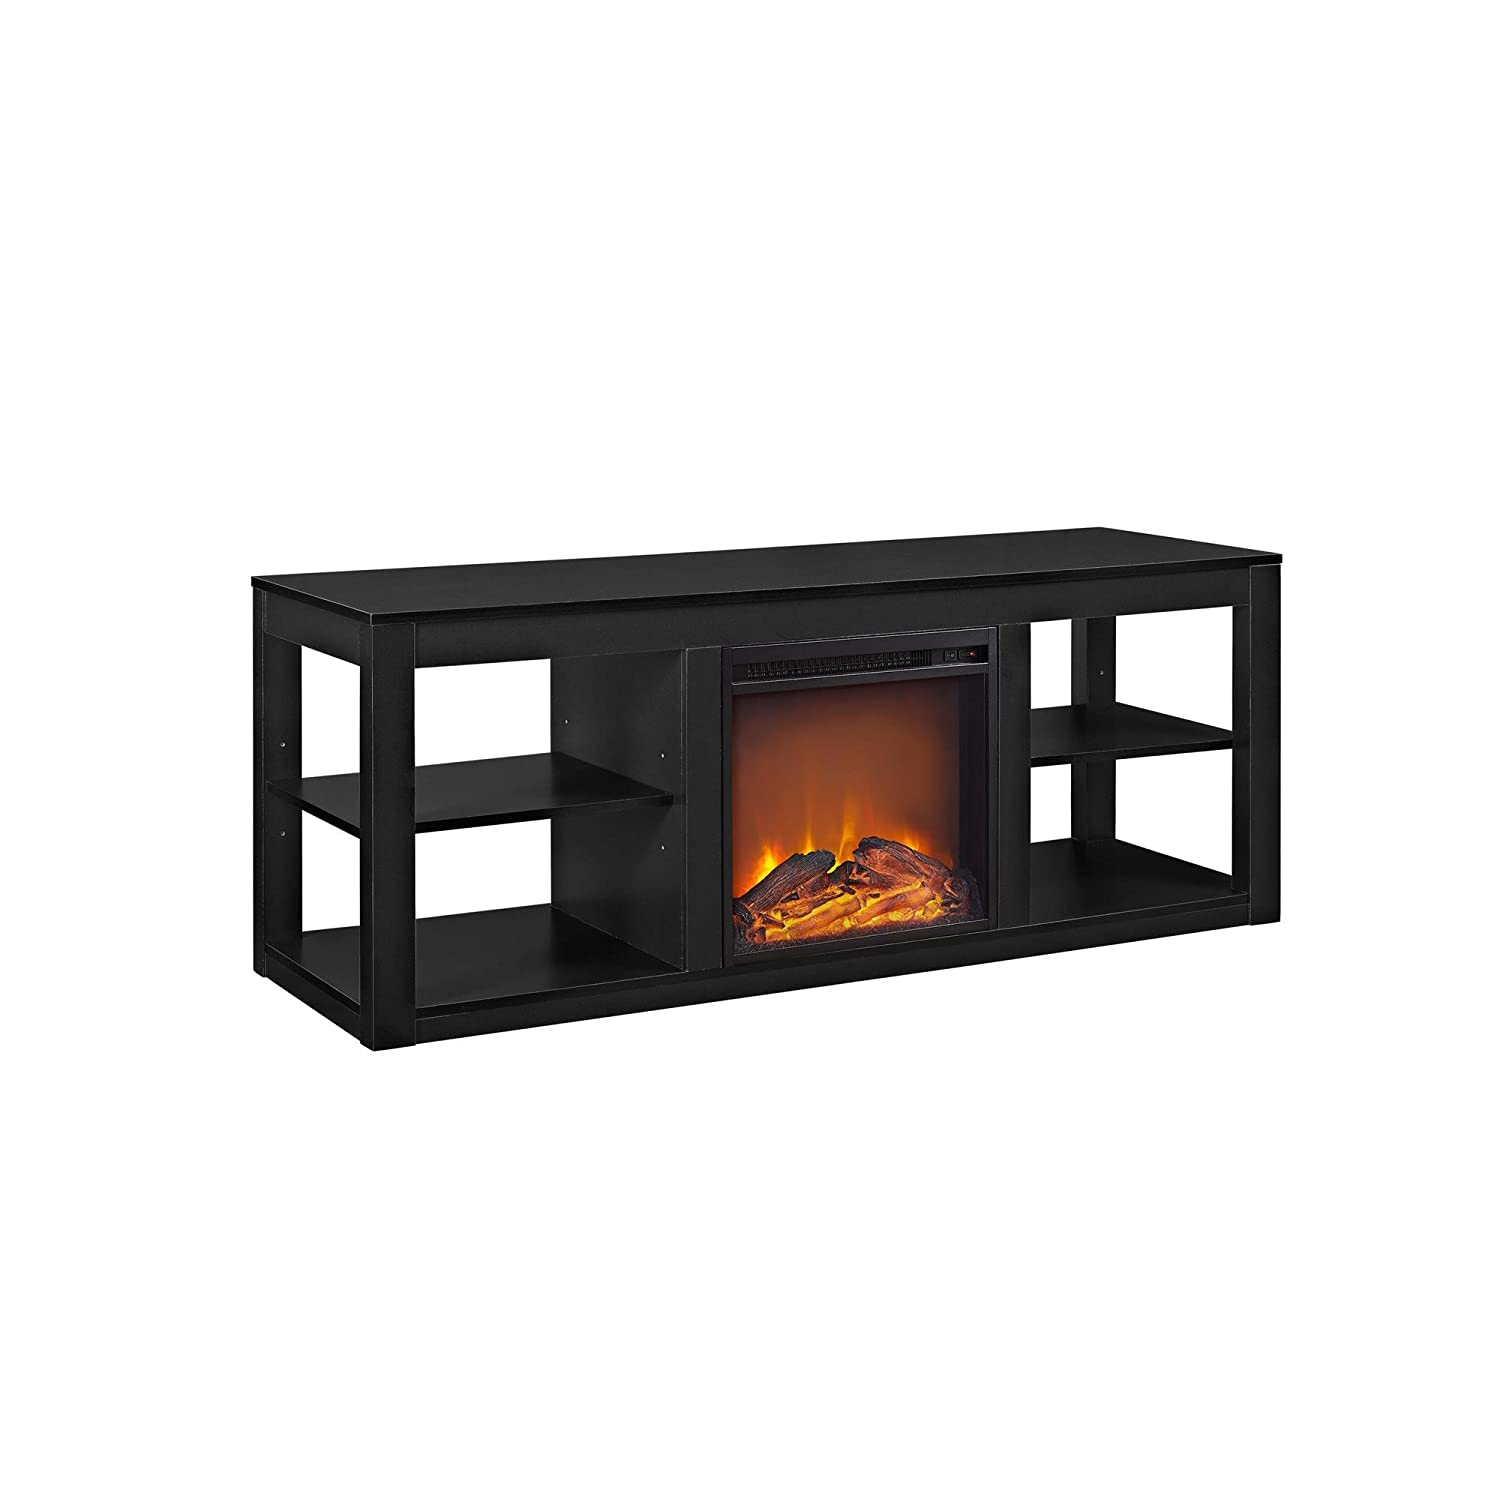 style white of and stunning image cheap uncategorized stand ideas combo imgid electric fireplace tv